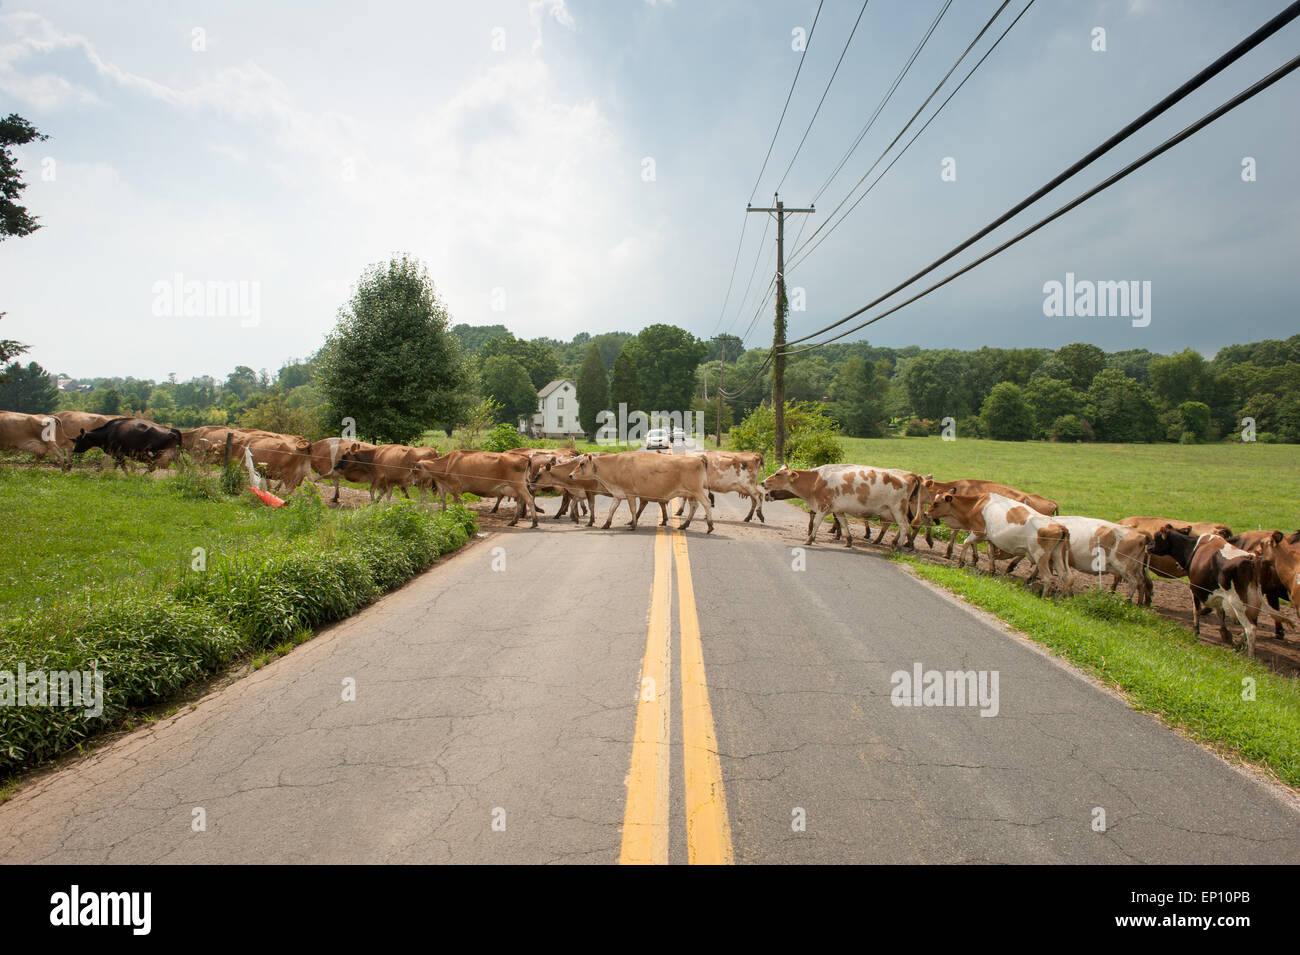 Dairy cows crossing the road near Long Green, Maryland, USA - Stock Image